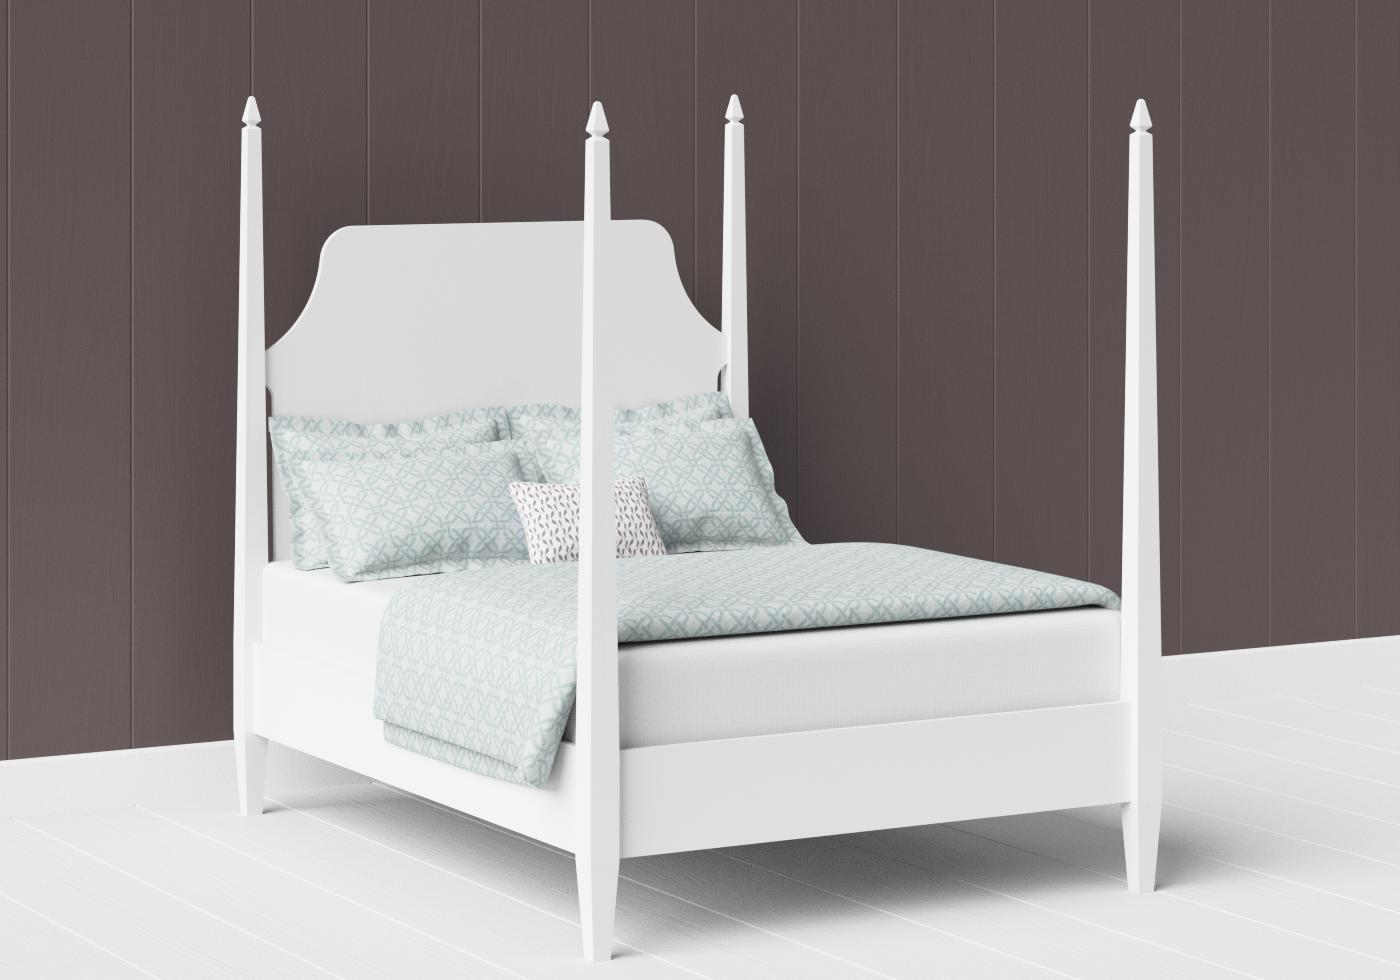 Turner four poster painted wood bed in satin white